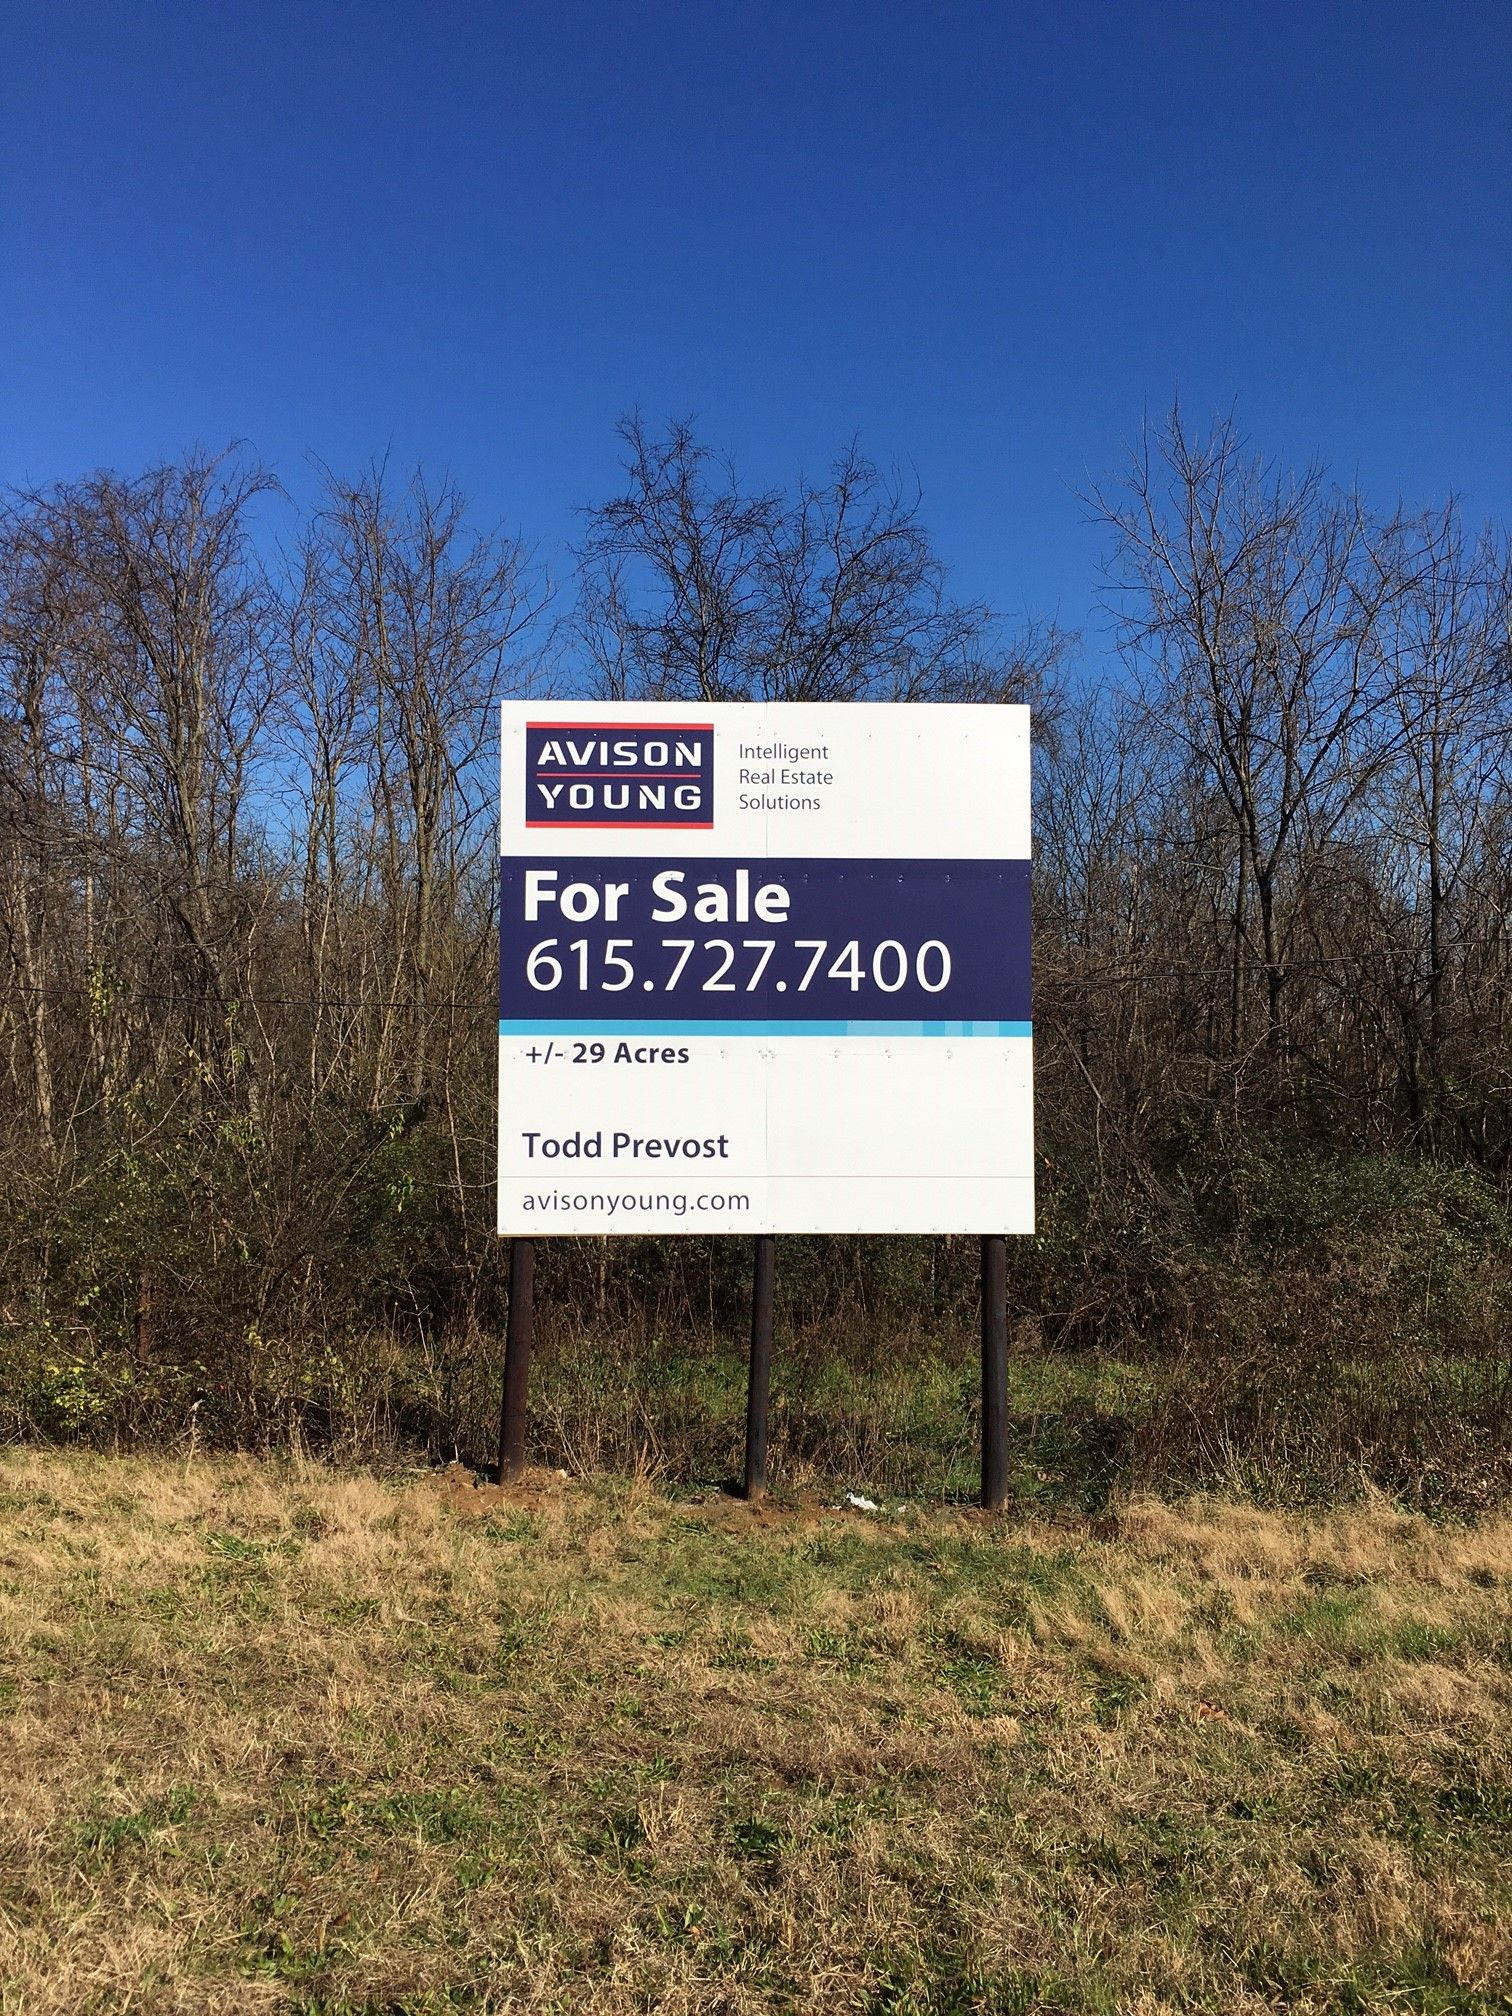 Large Real Estate Signs